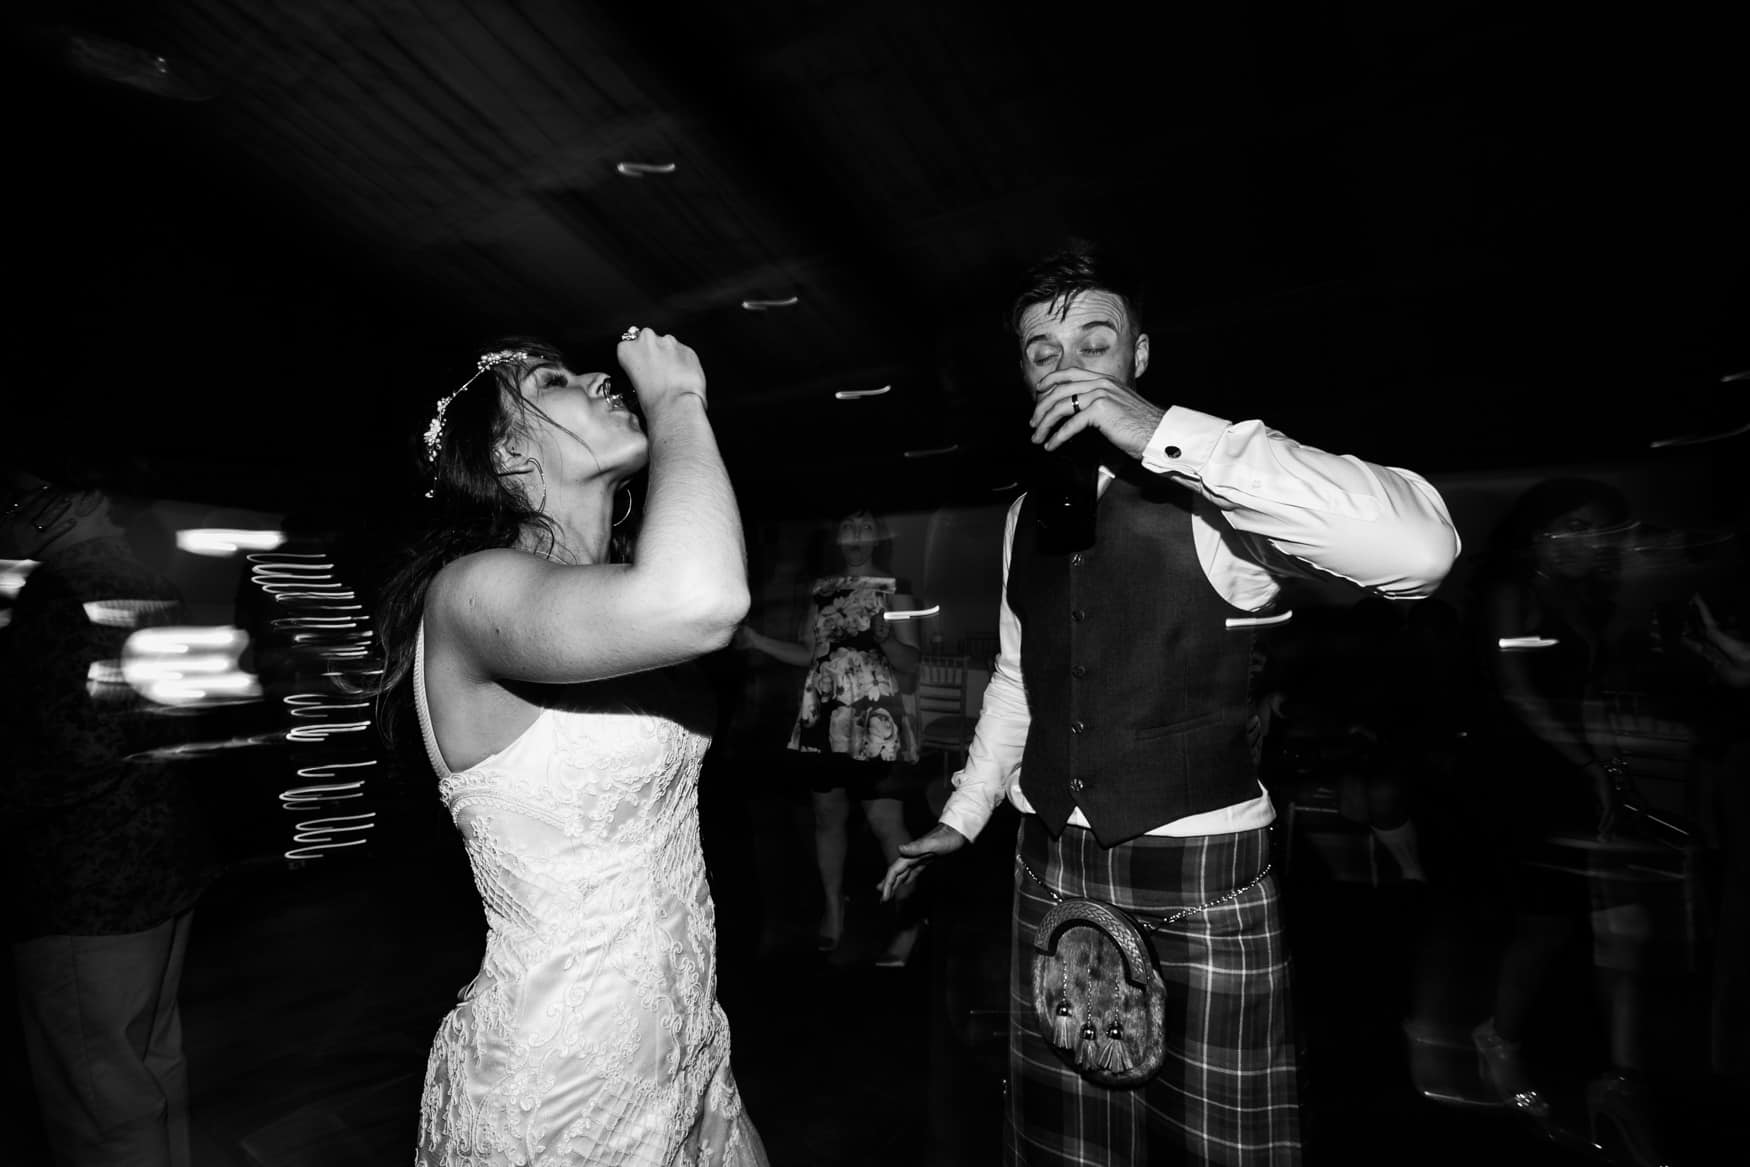 bride and groom do tequila shots